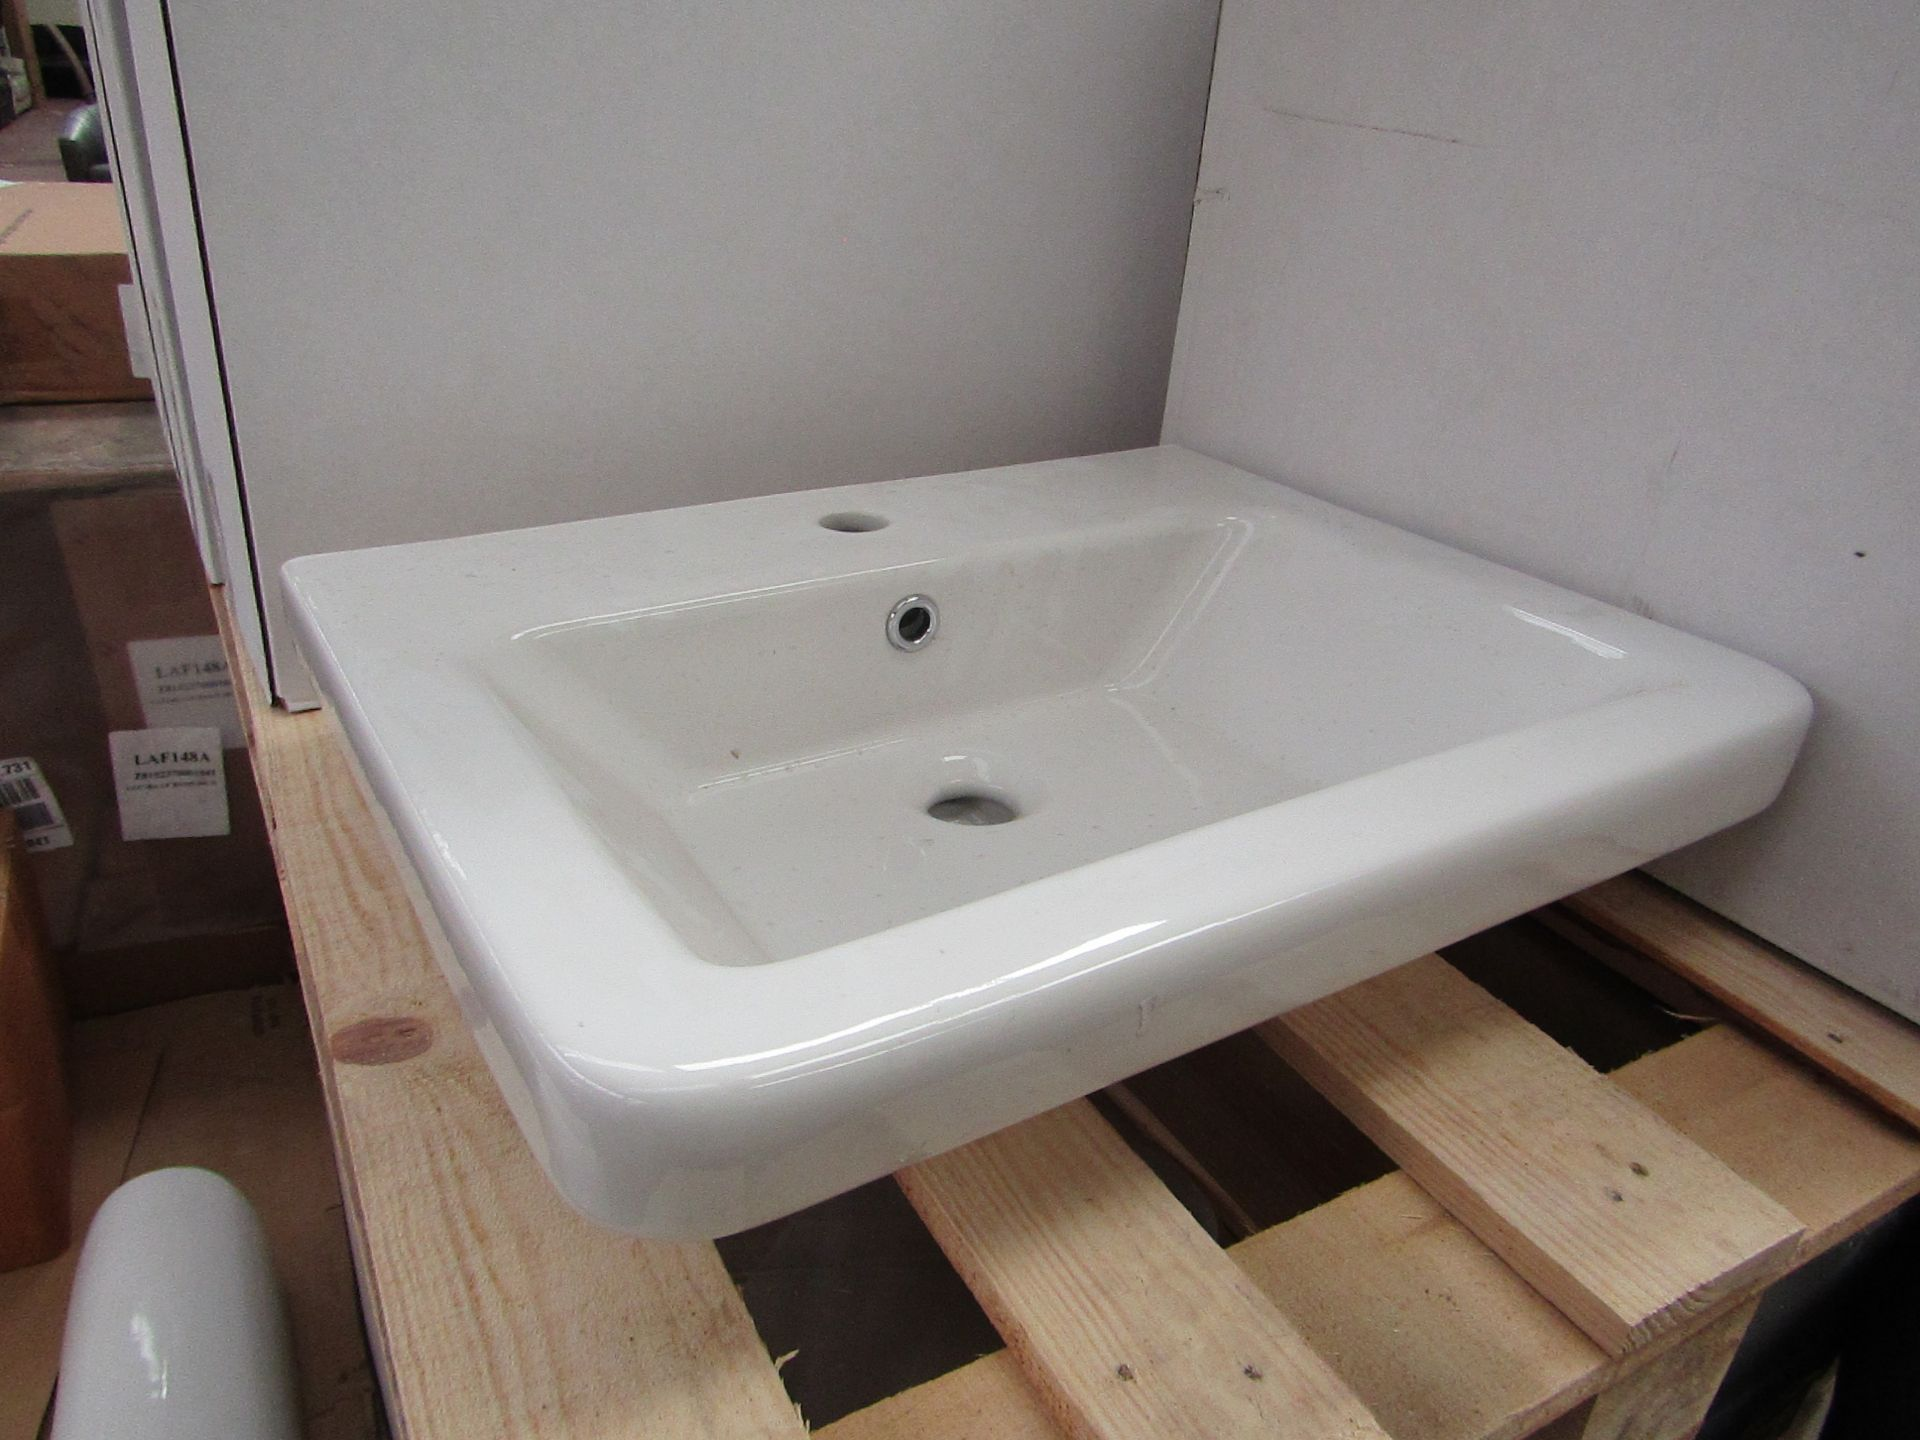 Lotto 39 - Verso 550mm 1 tap hole sink, new and boxed